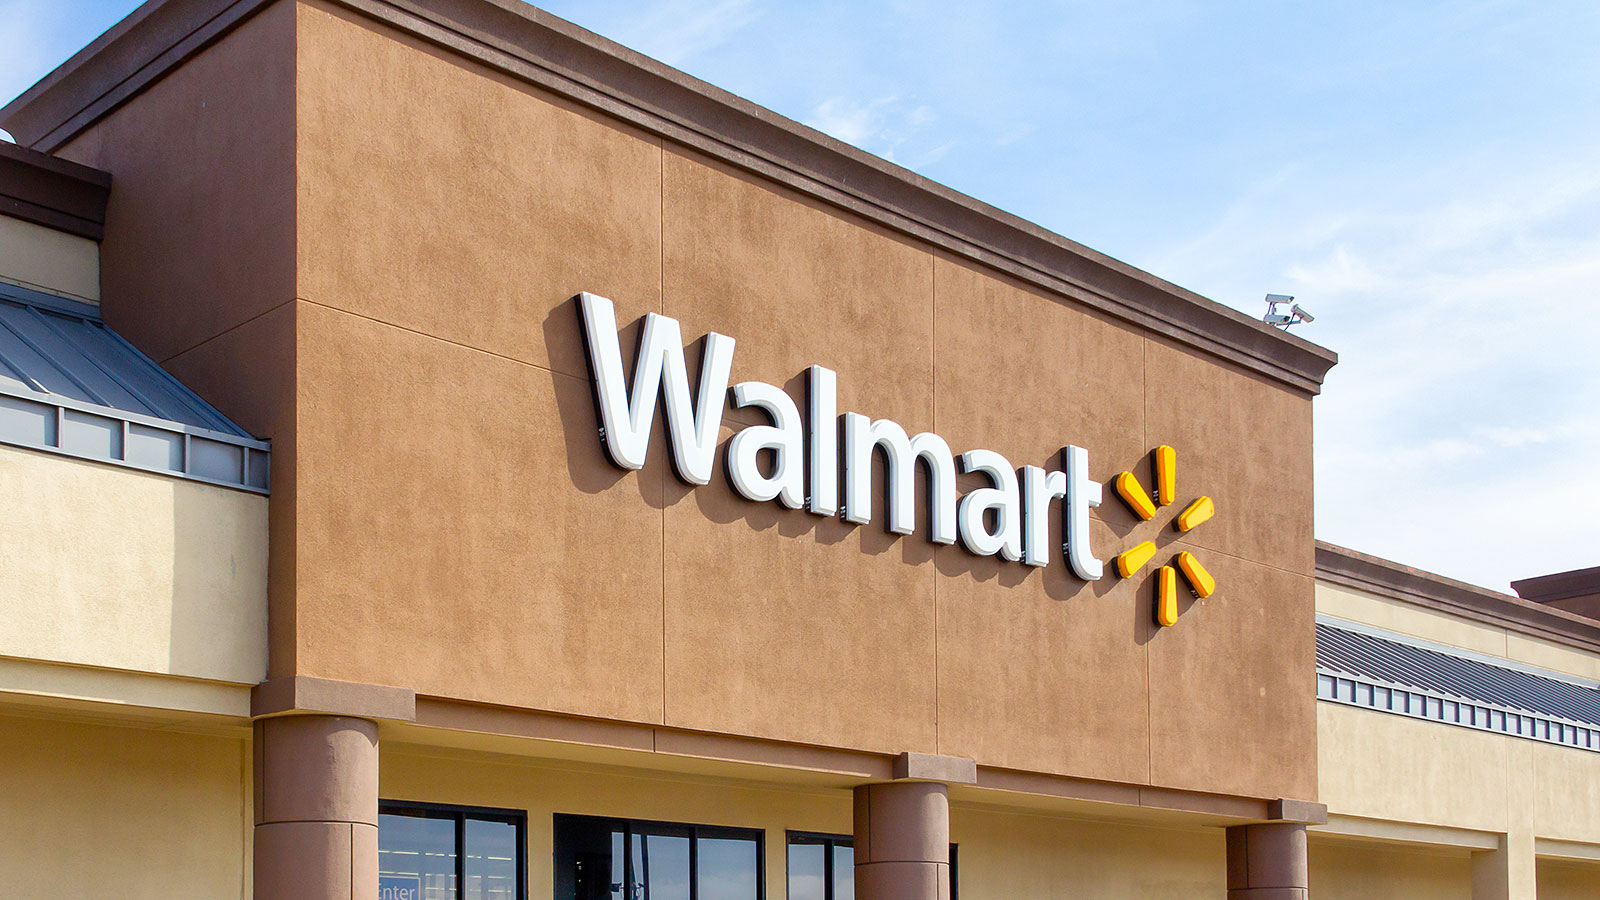 These are the first steps to becoming a CEO, according to Walmart's CEO